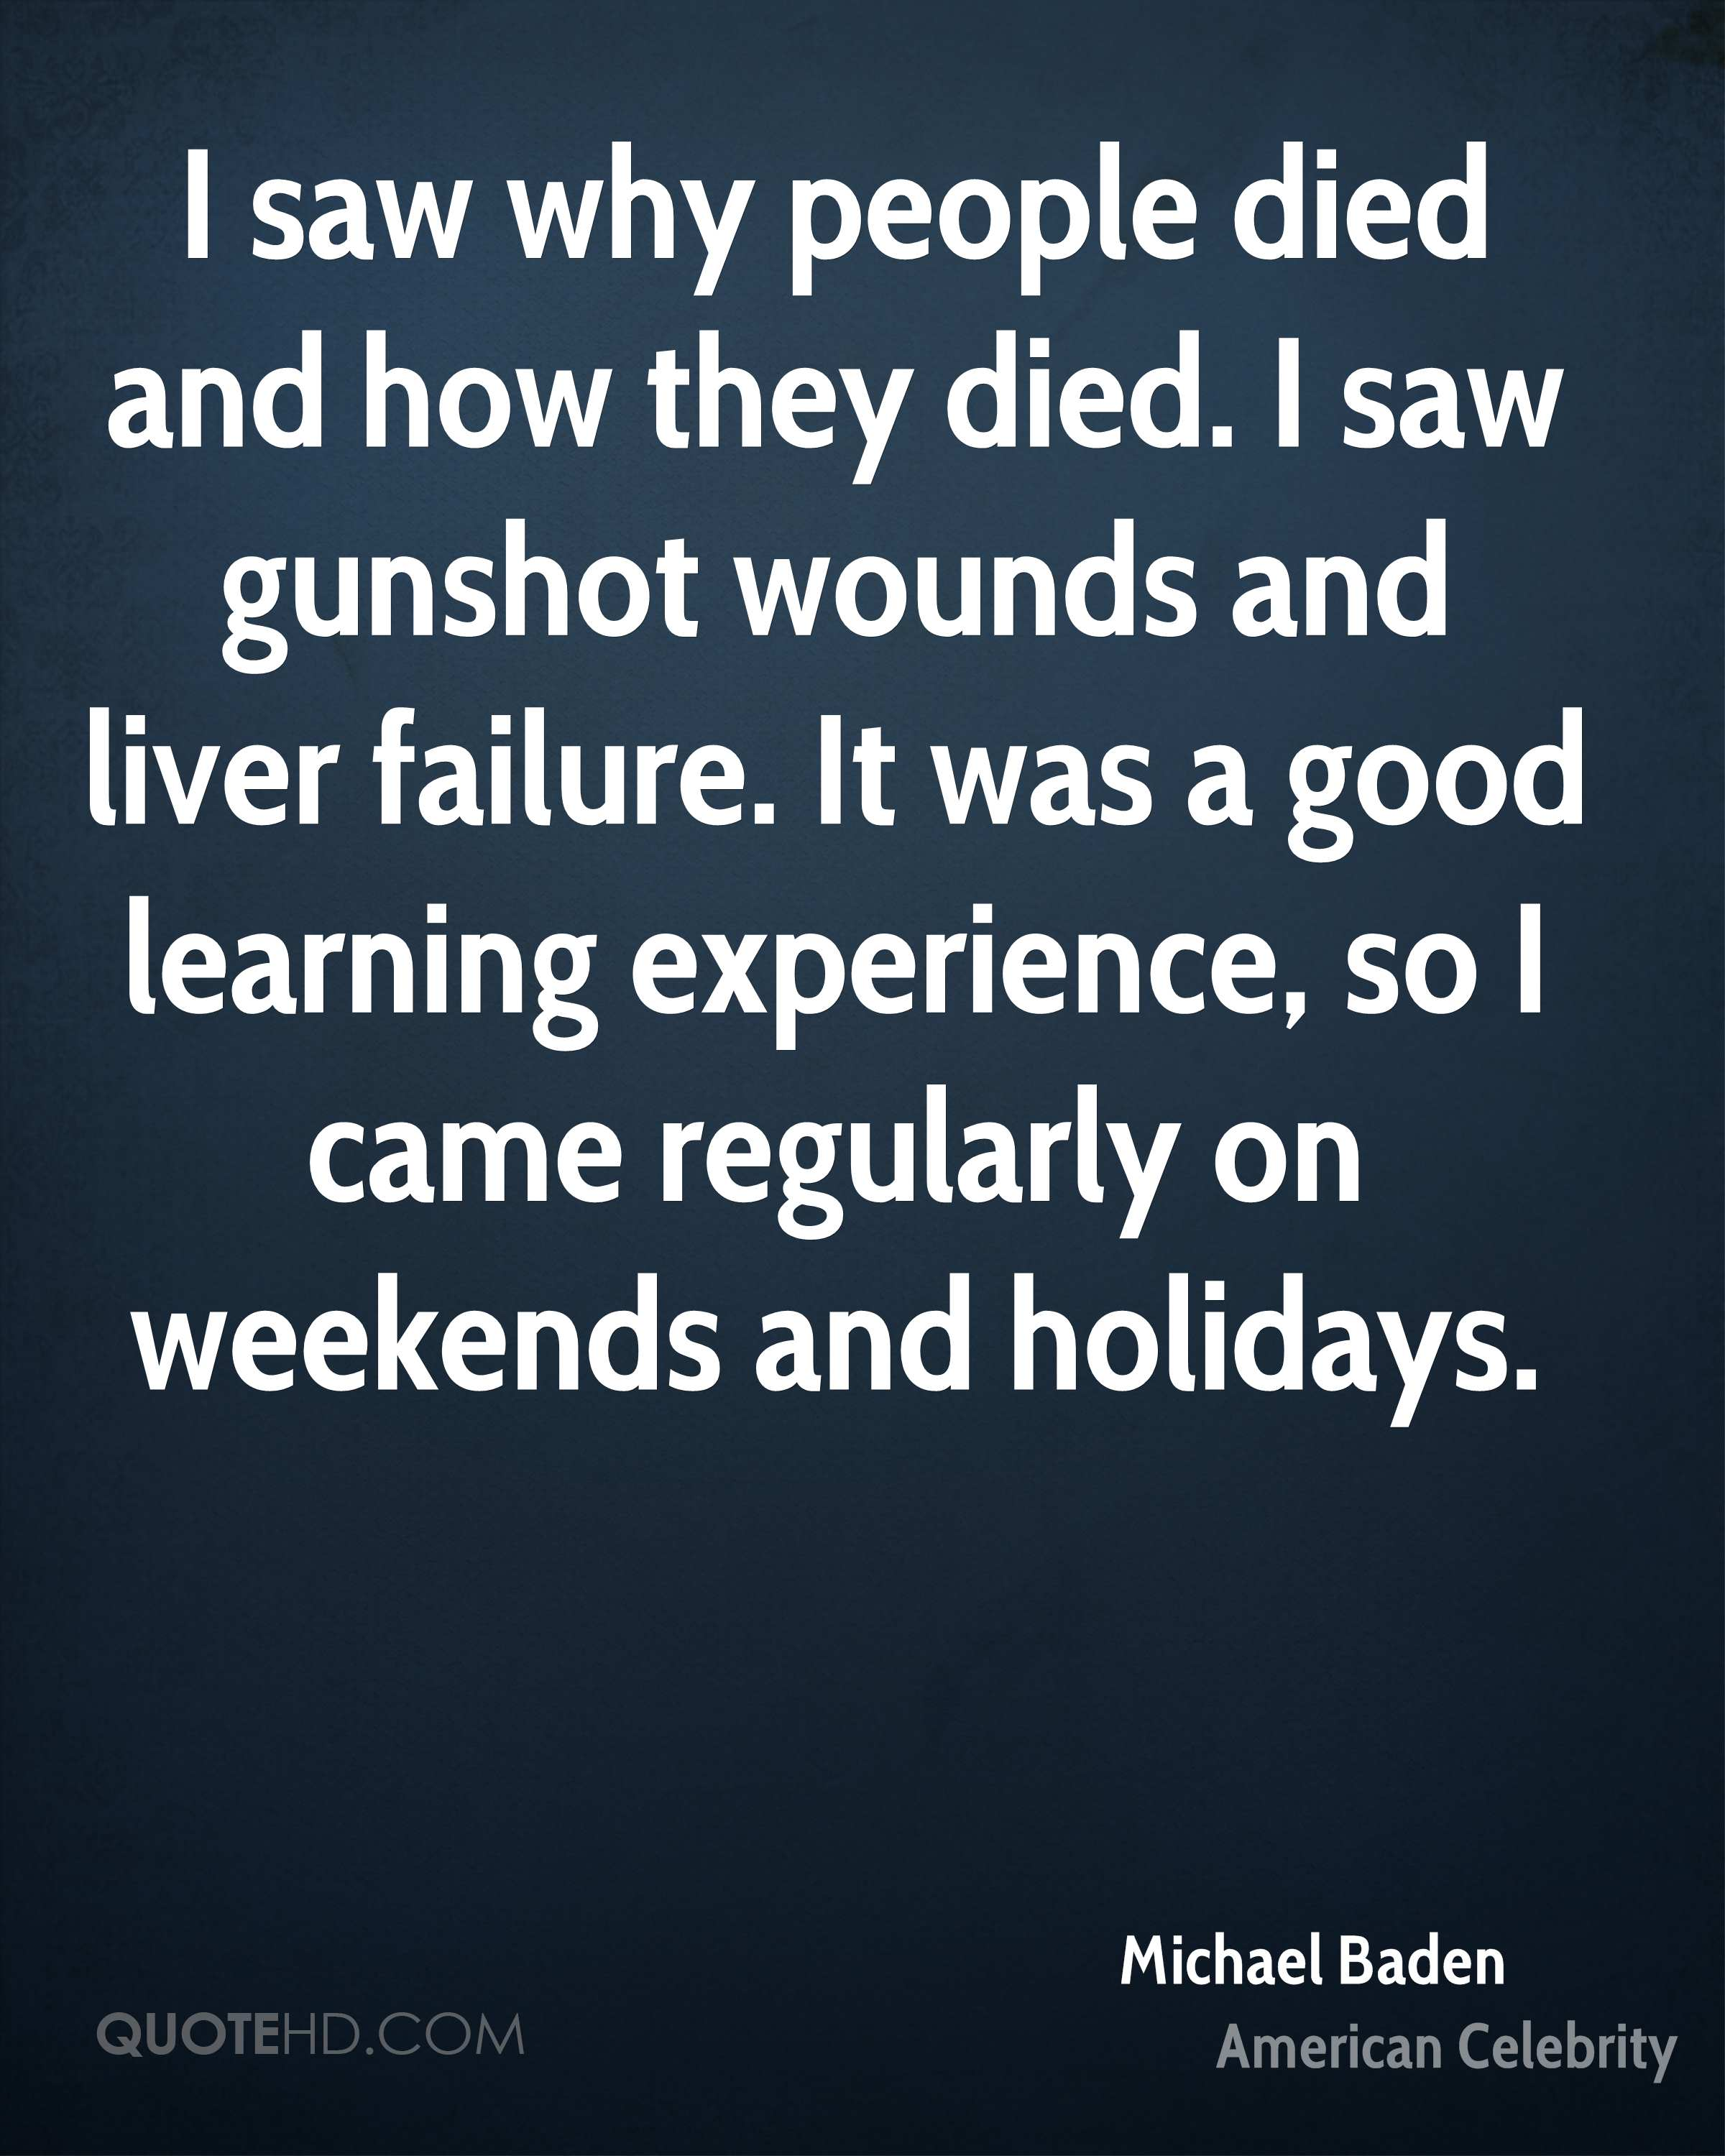 I saw why people died and how they died. I saw gunshot wounds and liver failure. It was a good learning experience, so I came regularly on weekends and holidays.